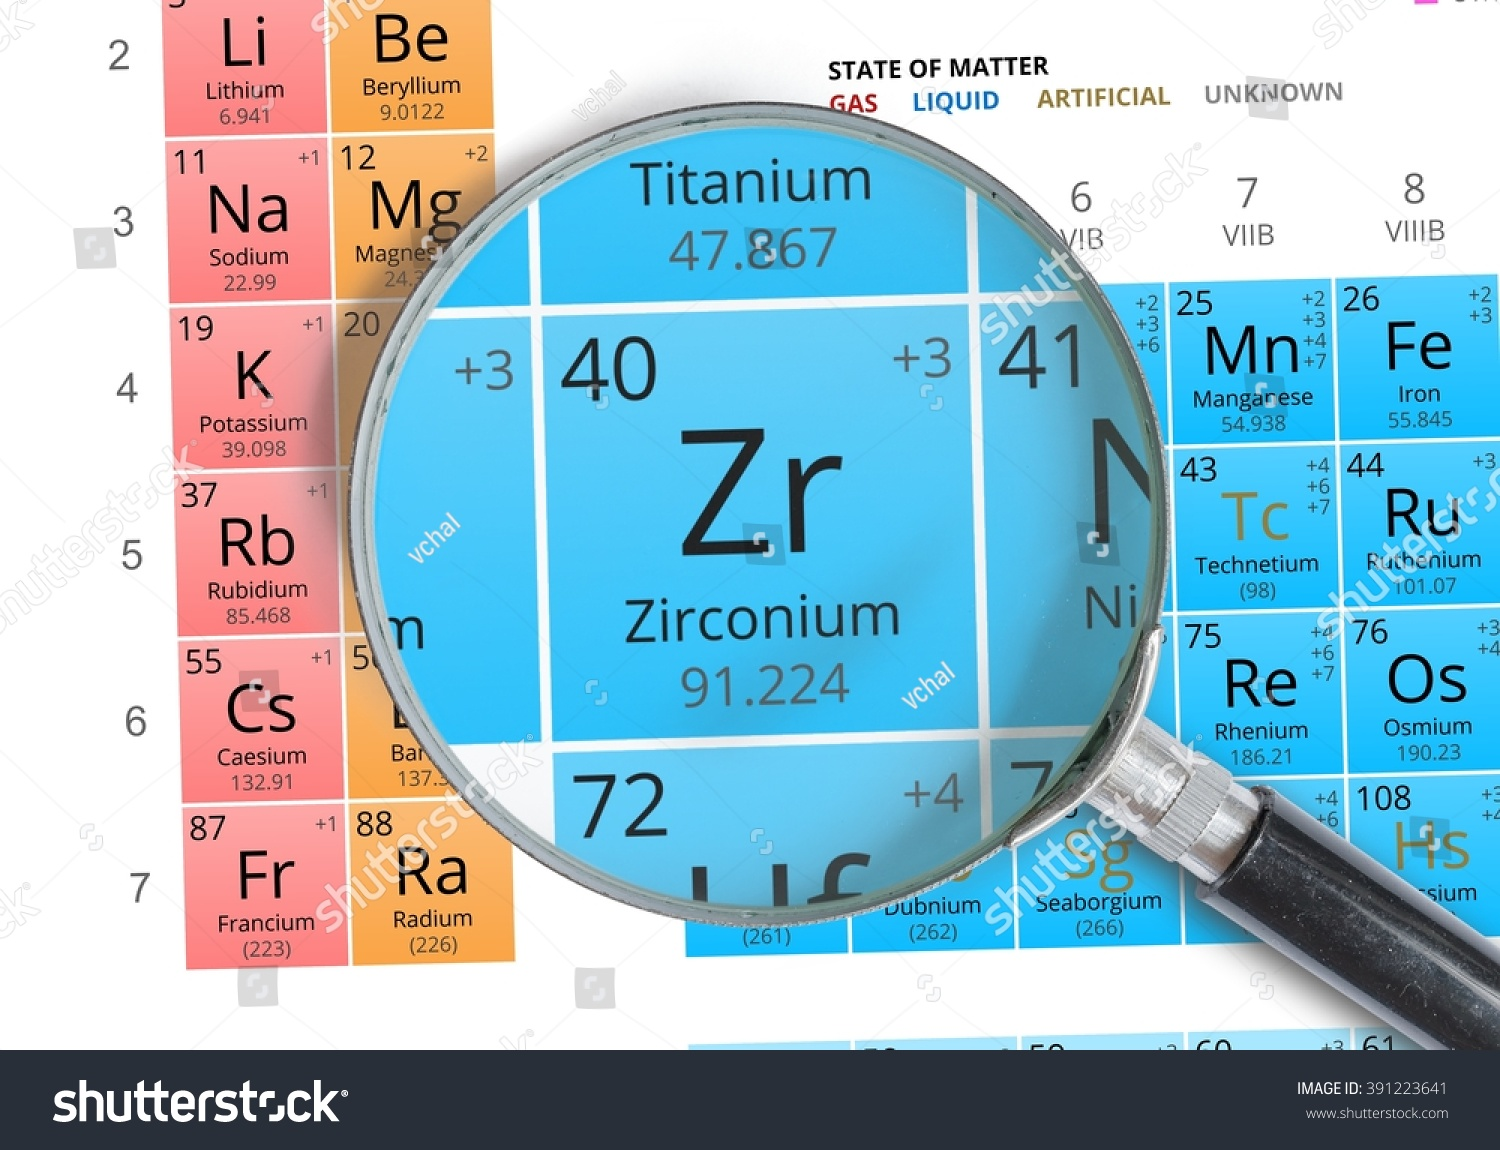 Zirconium symbol zr element periodic table stock photo 391223641 zirconium symbol zr element of the periodic table zoomed with magnifying glass urtaz Image collections